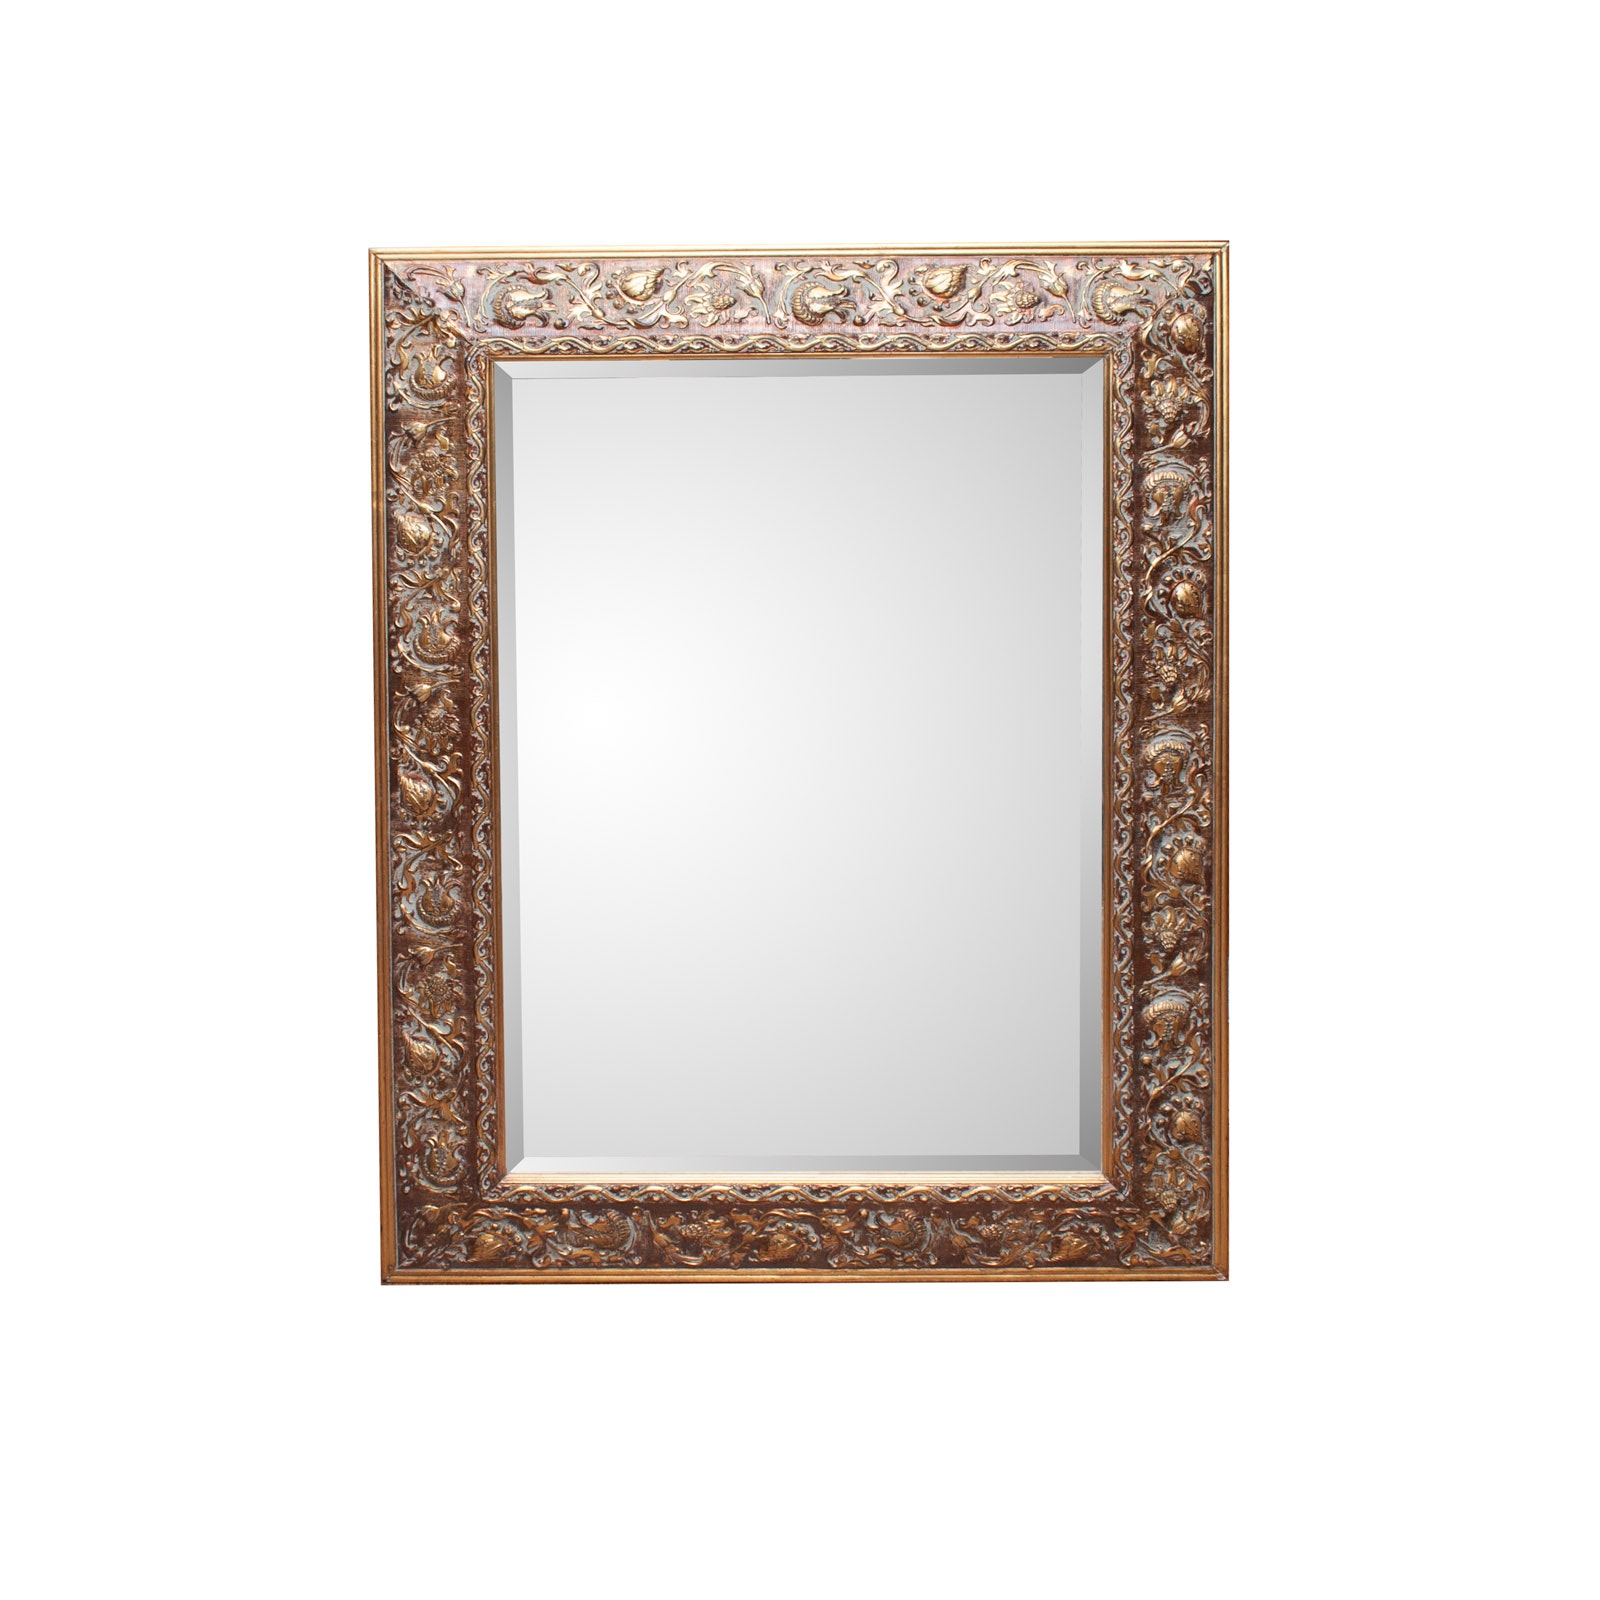 Large Floral Gilt Wall Mirror